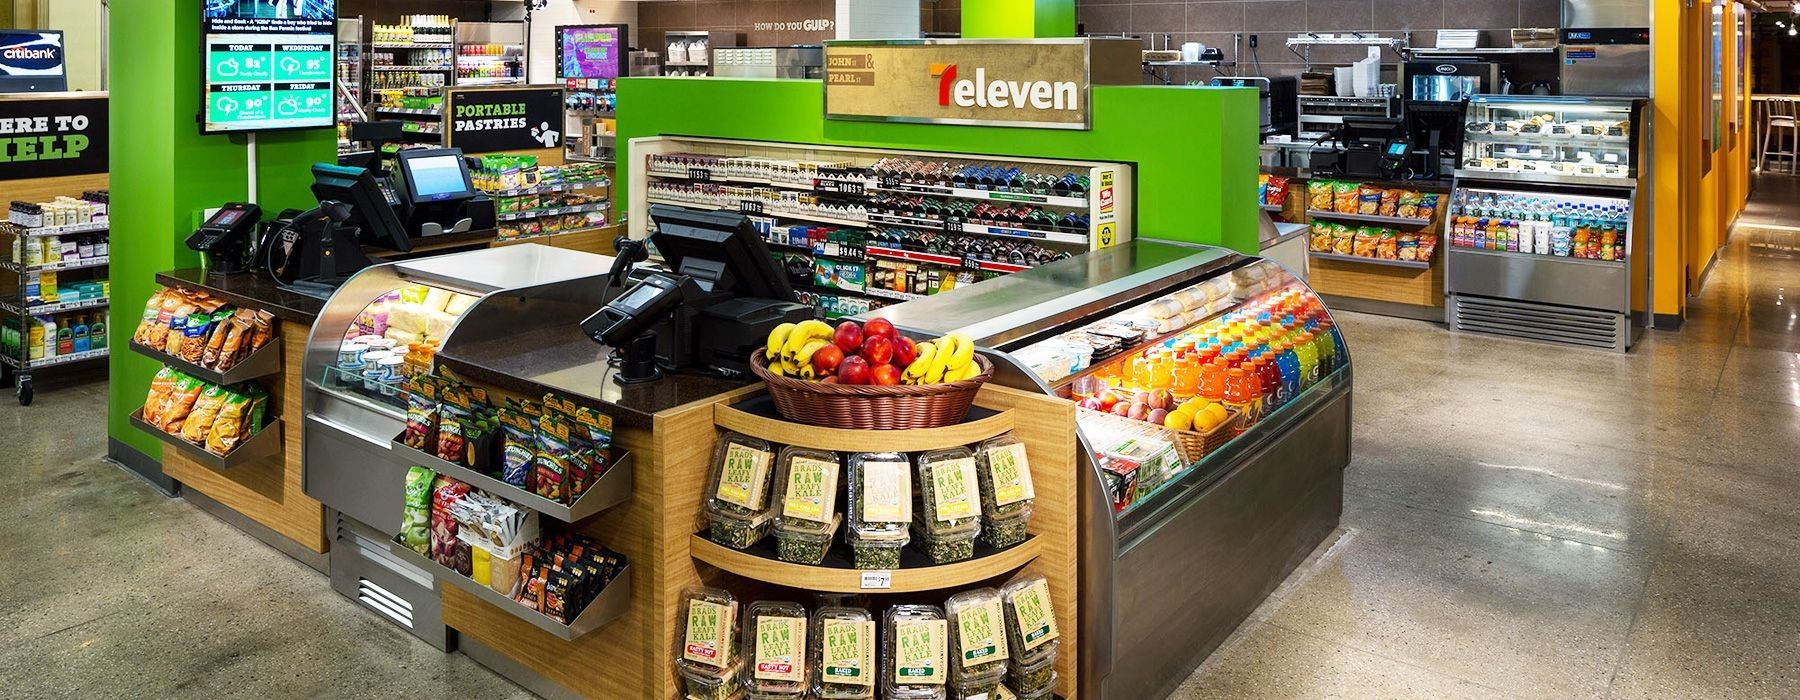 New 7 Eleven Store Design Google Search Diseno Interior De Tienda